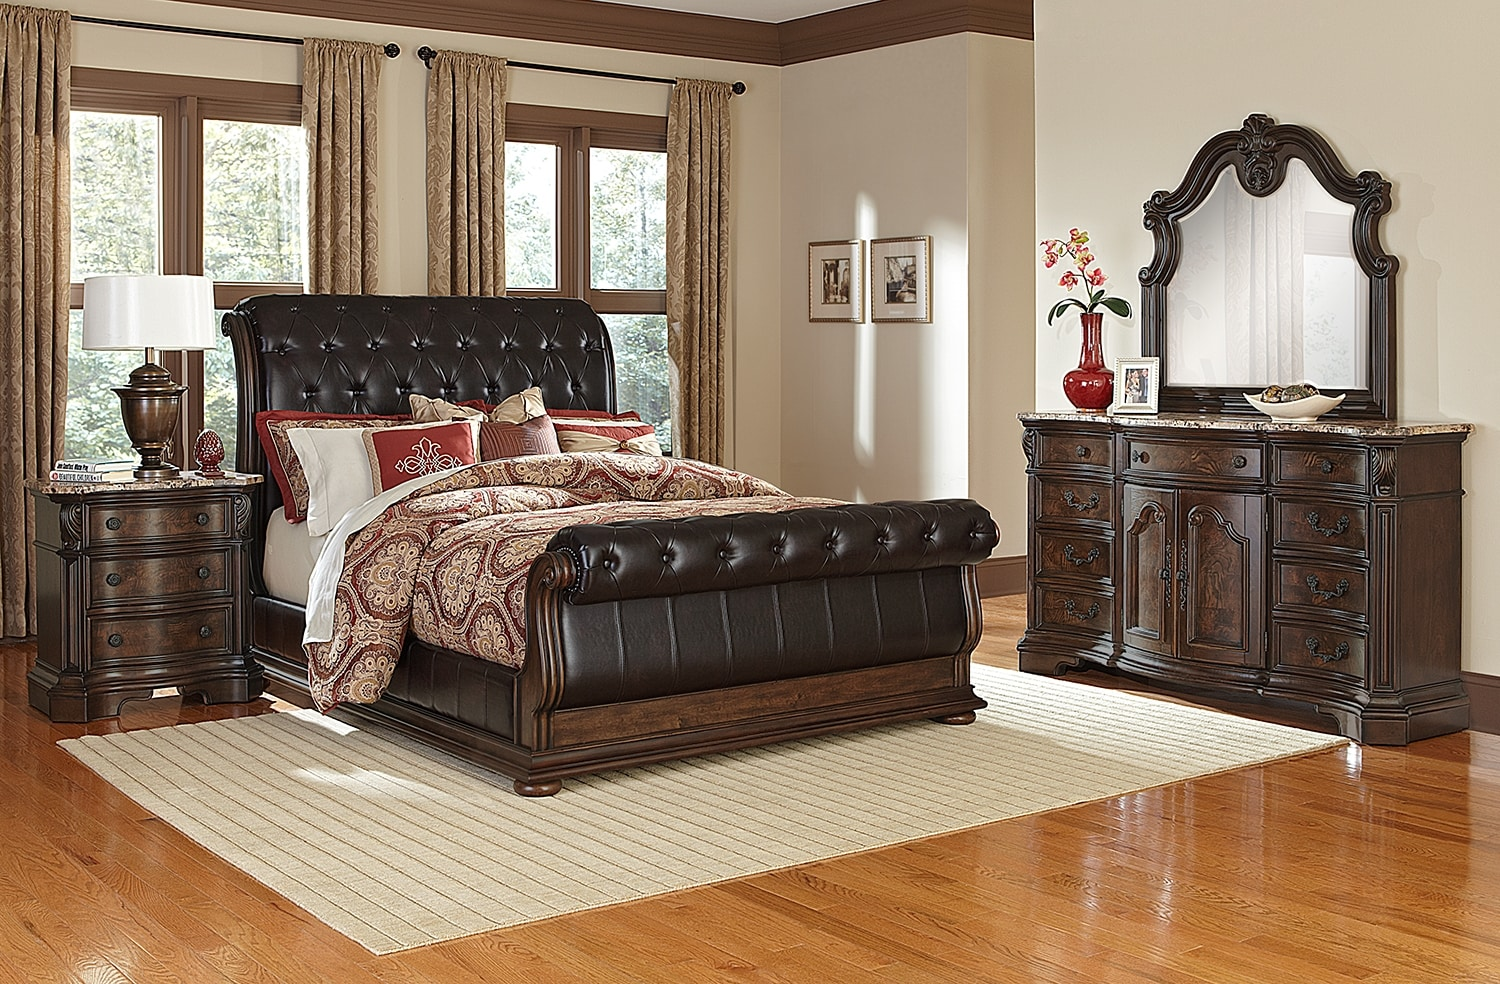 Monticello 6 Piece King Upholstered Sleigh Bedroom Set